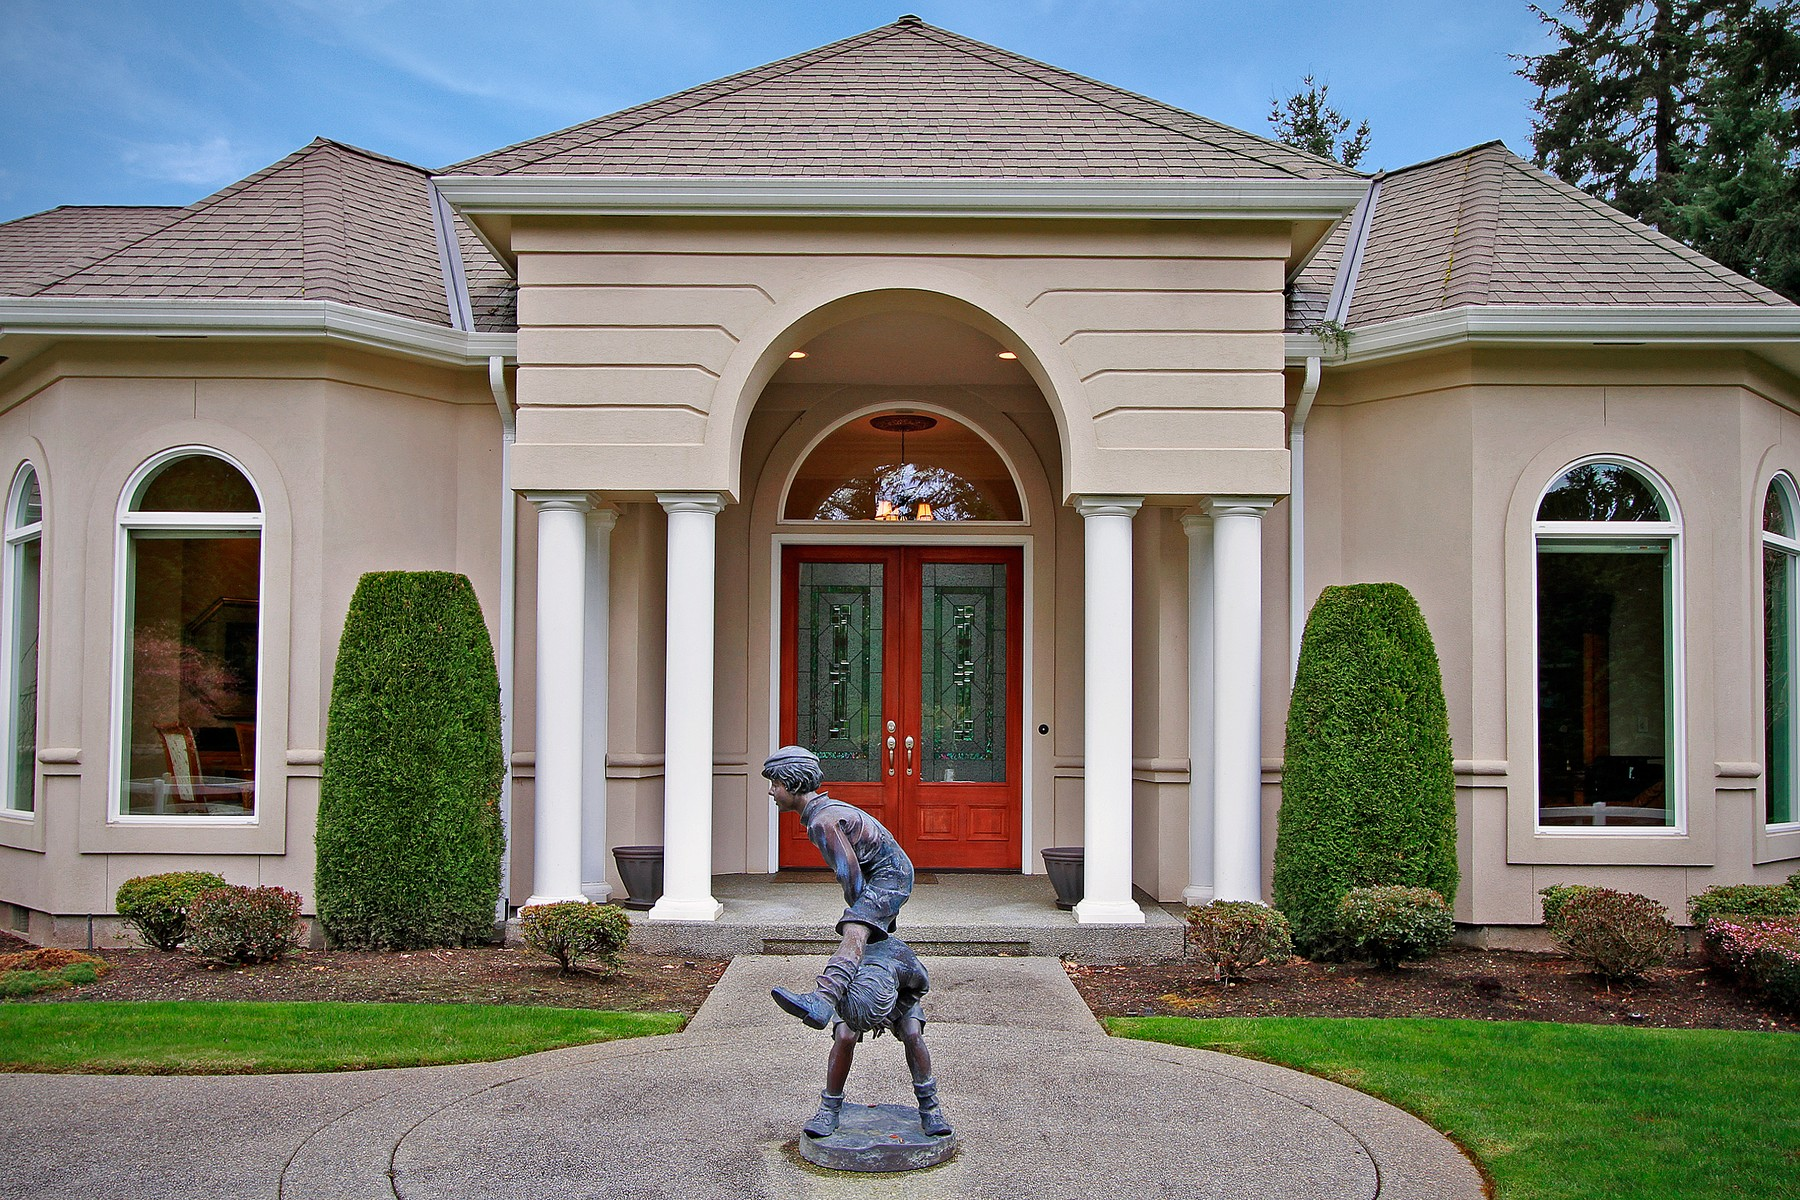 Single Family Home for Sale at CountryClubCircle 128 Country Club Circle Lakewood, Washington, 98498 United States